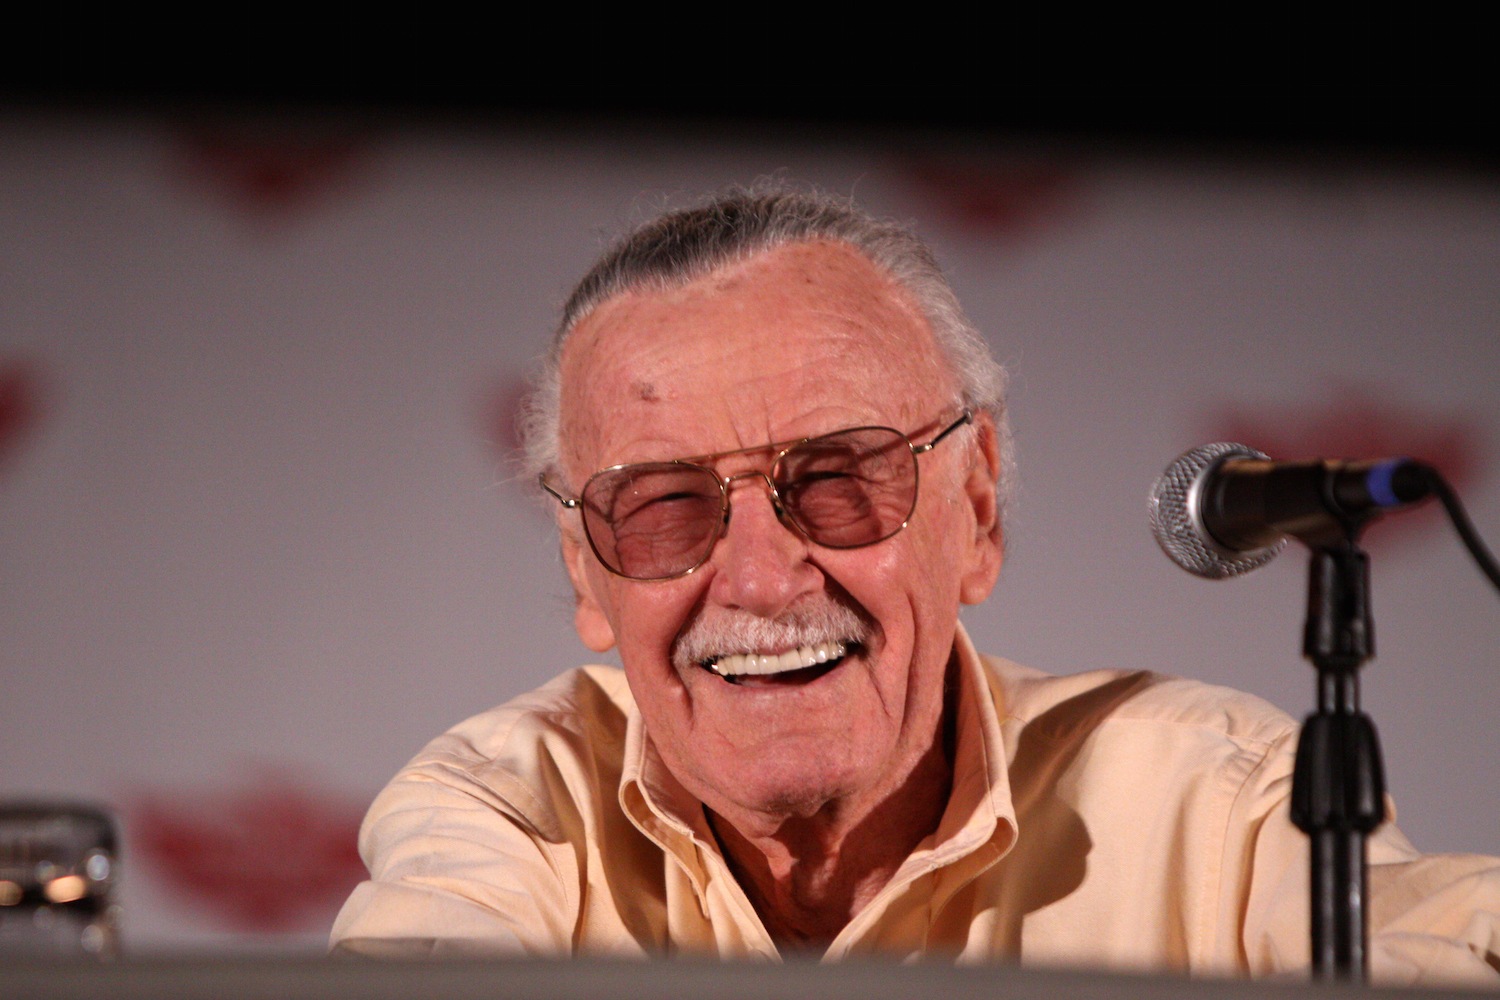 Stan Lee's Working on a Latino Superhero Who We'll Meet by the End of the Year